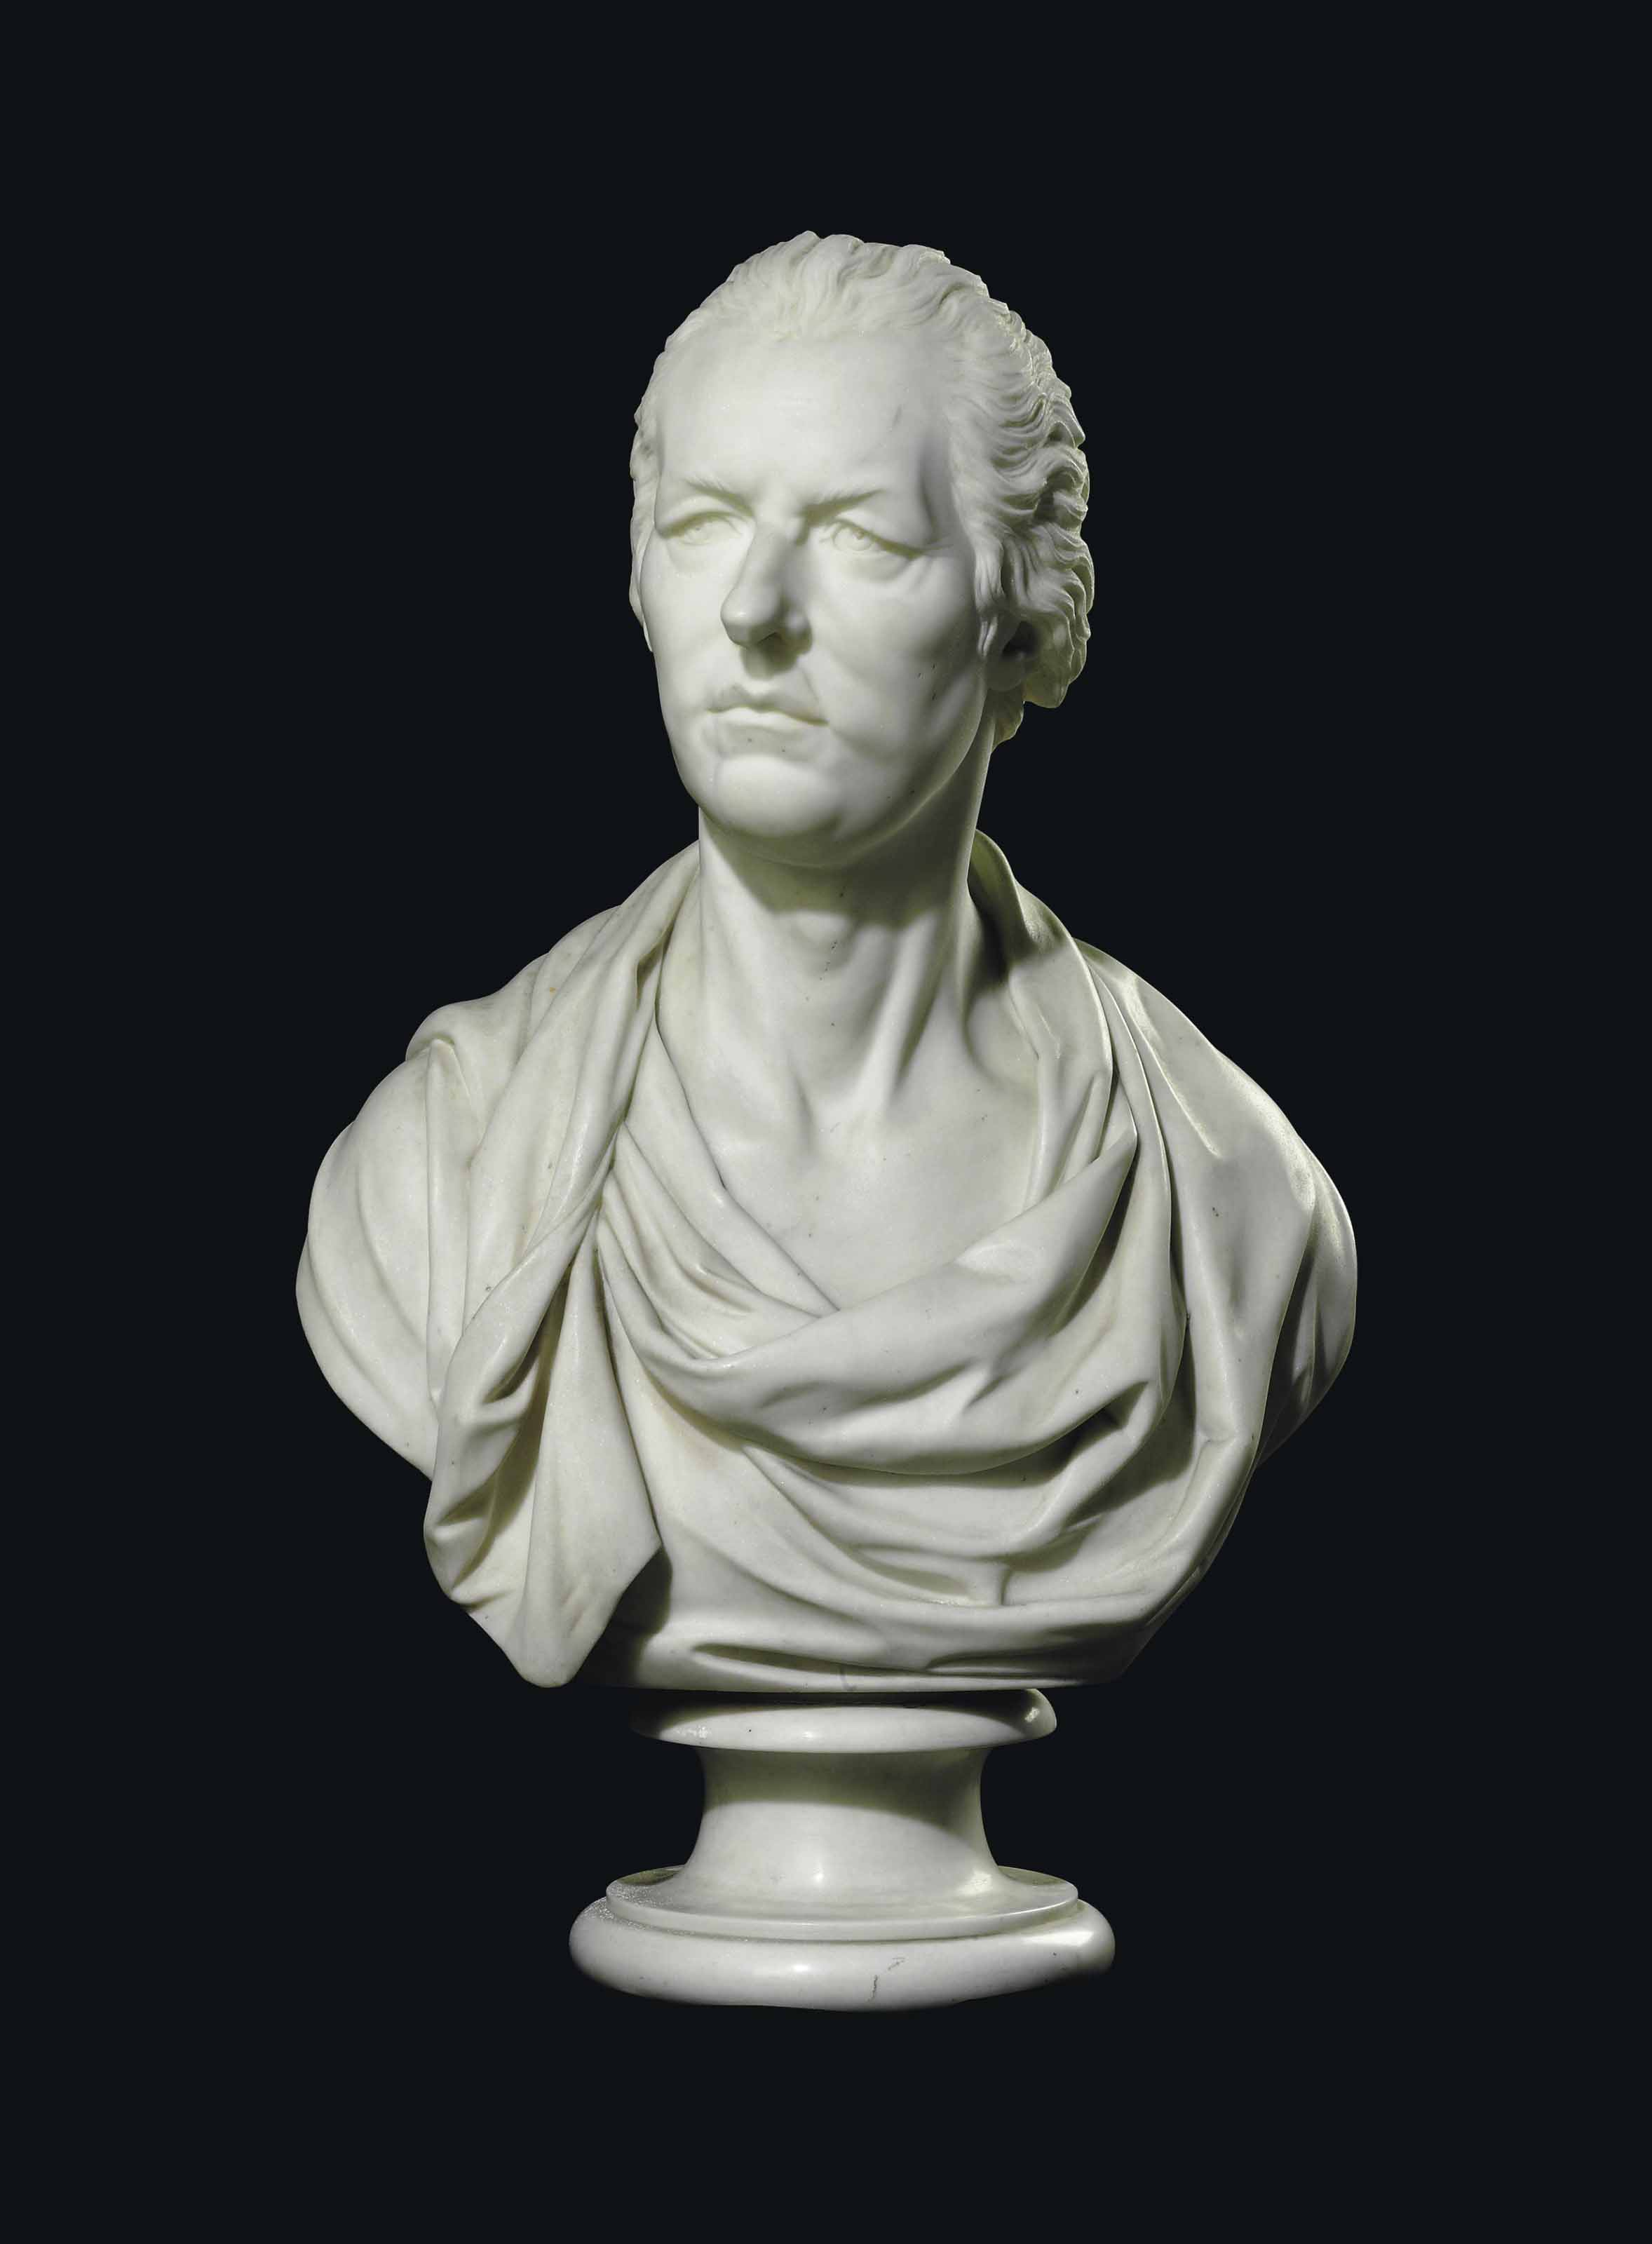 A MARBLE BUST OF WILLIAM PITT THE YOUNGER